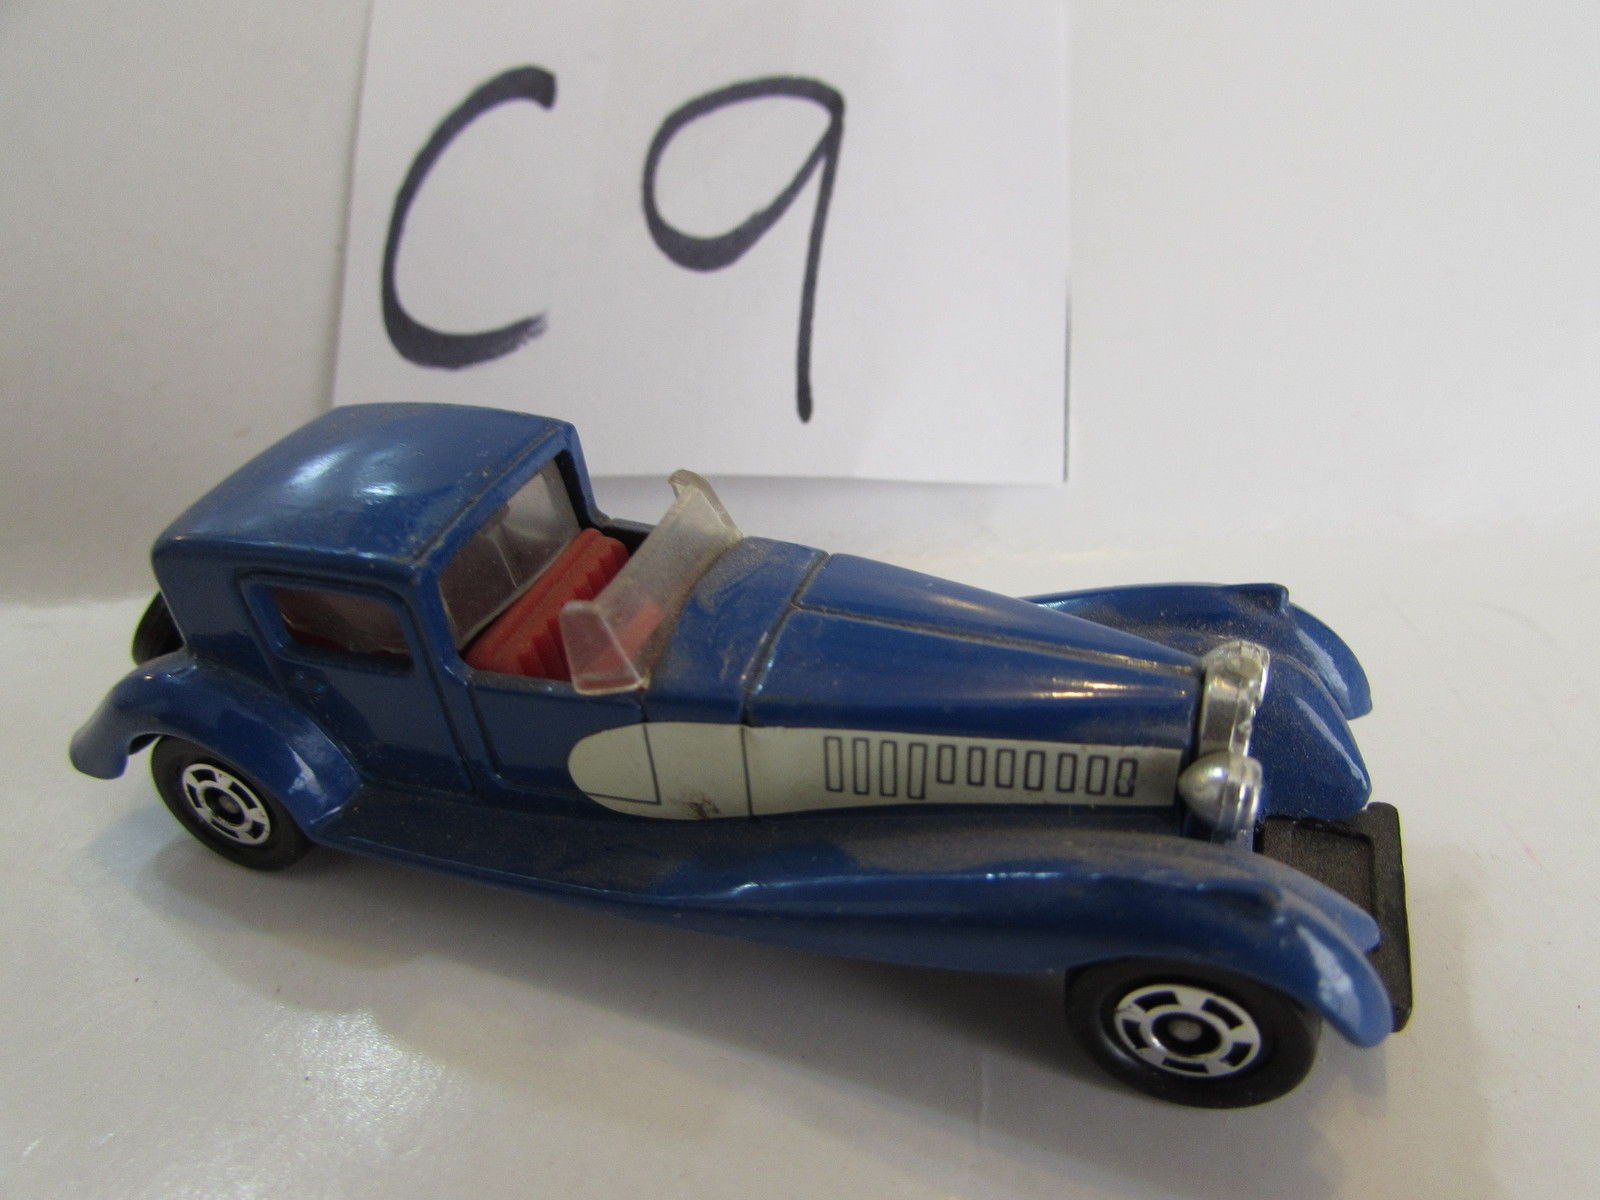 1978 TOMICA BUGATTI COUPE DE VILLE SCALE 1:80 MADE IN JAPAN - LOOSE